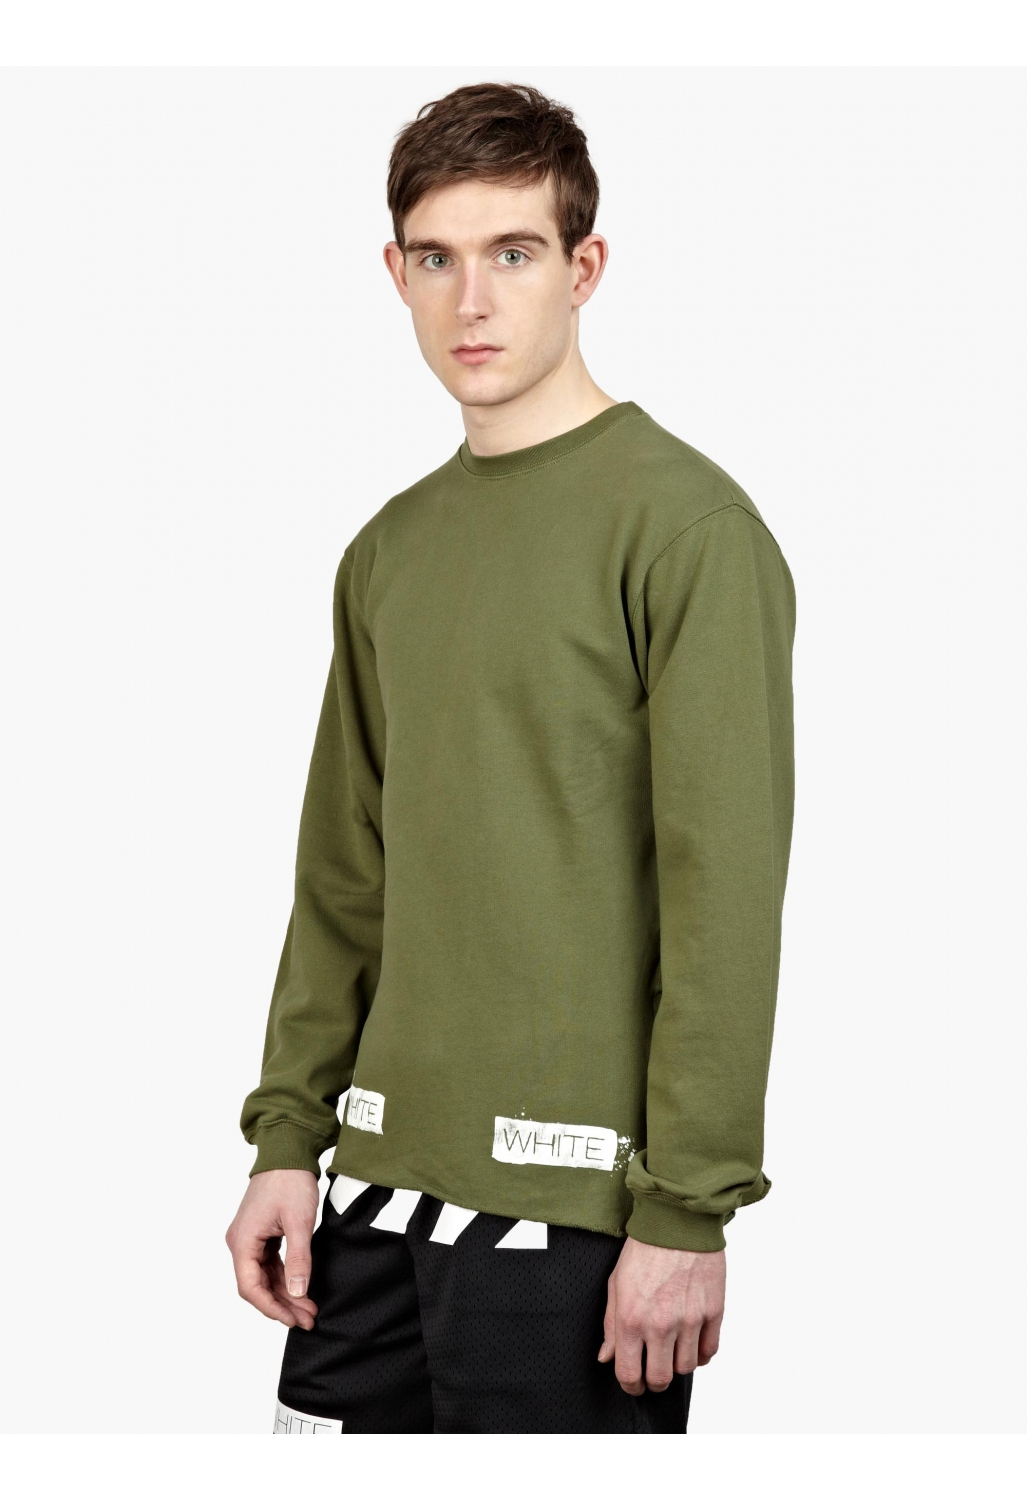 off white c o virgil abloh men s green cotton logo sweatshirt in green for men lyst. Black Bedroom Furniture Sets. Home Design Ideas